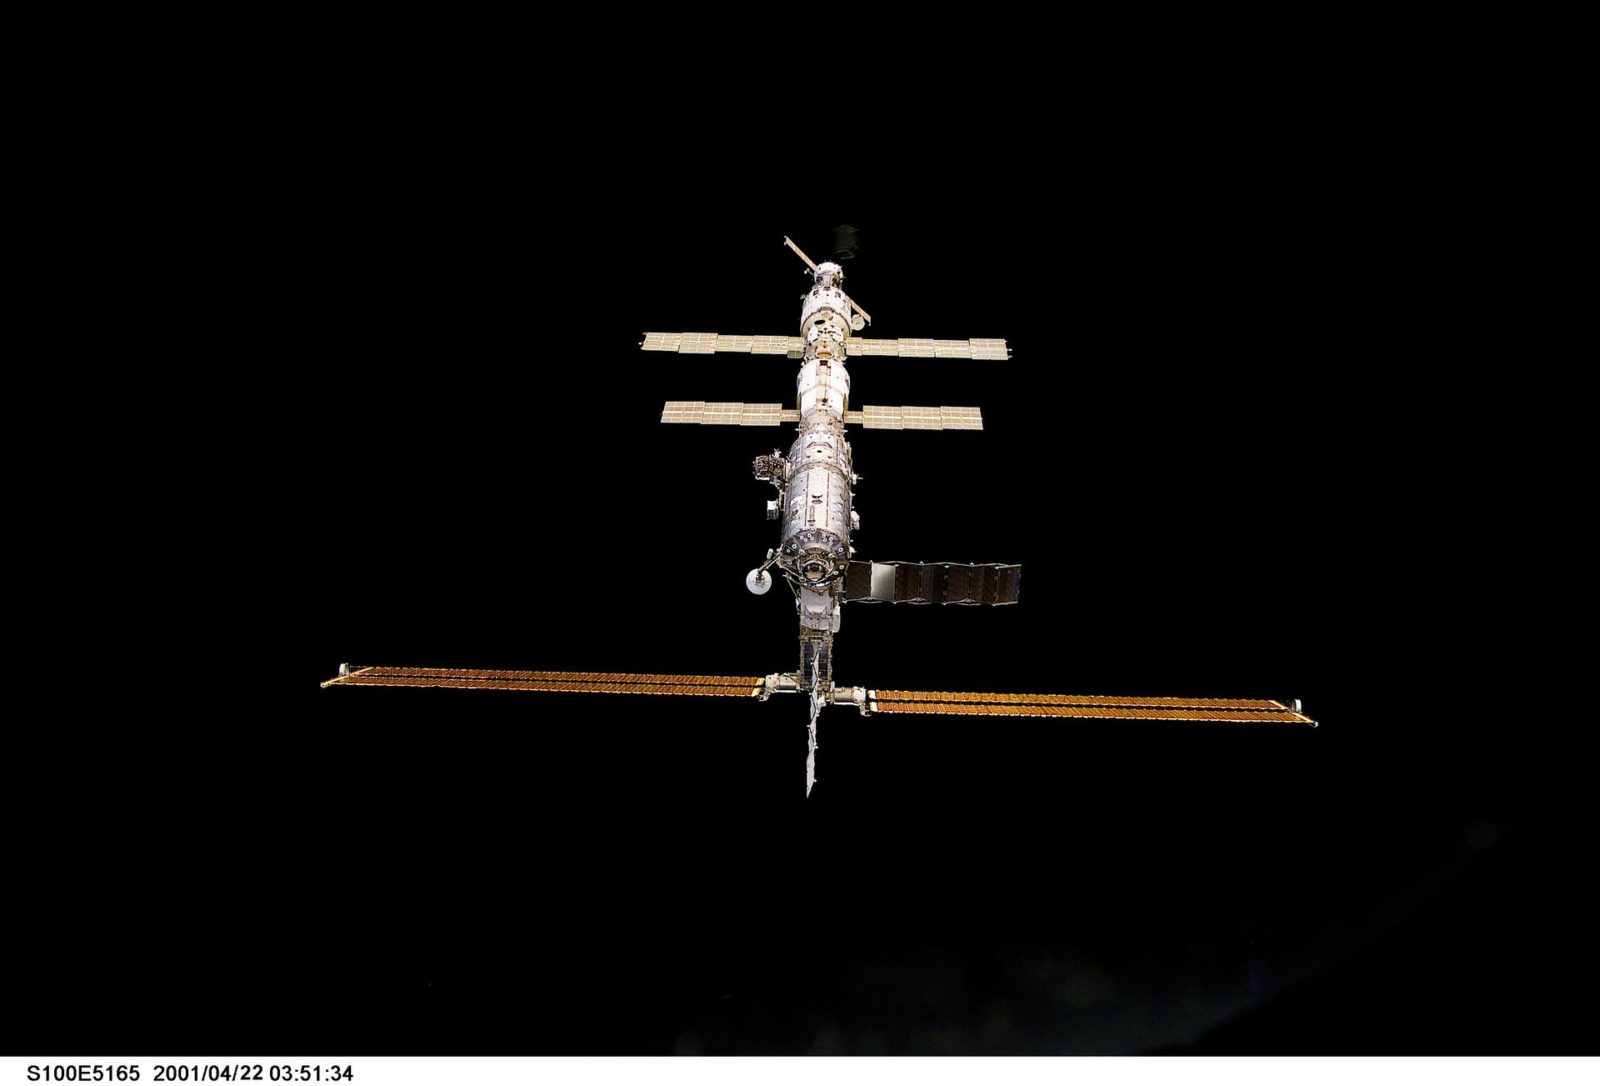 Nadir view of the ISS taken during the approach of Endeavour during STS-100